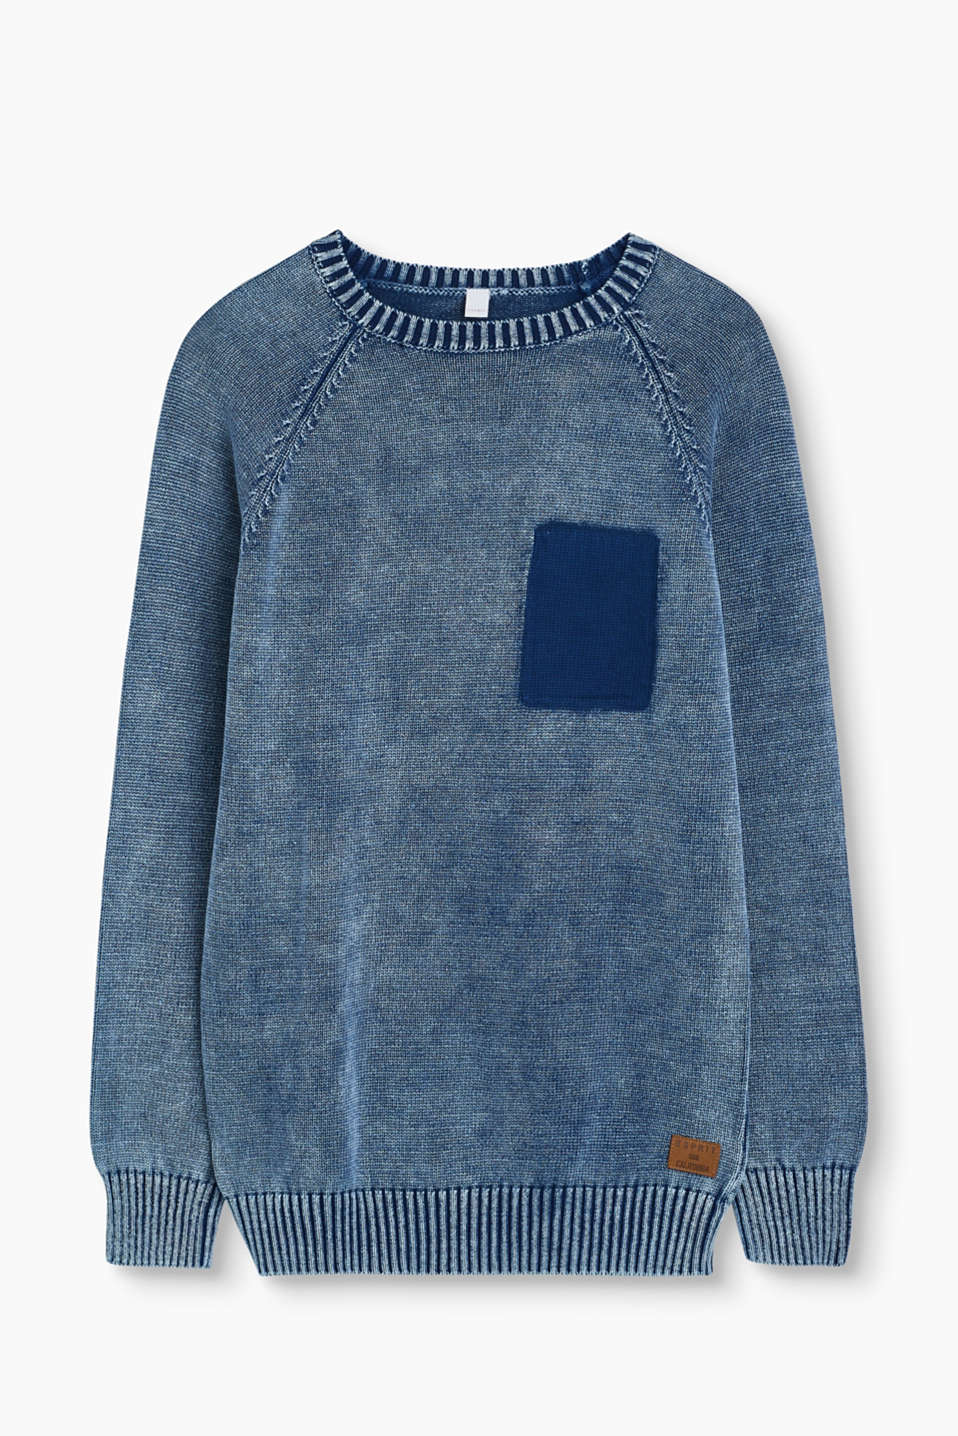 A knit highlight! The mock breast pocket in a contrasting colour makes this sweater extremely eye-catching.